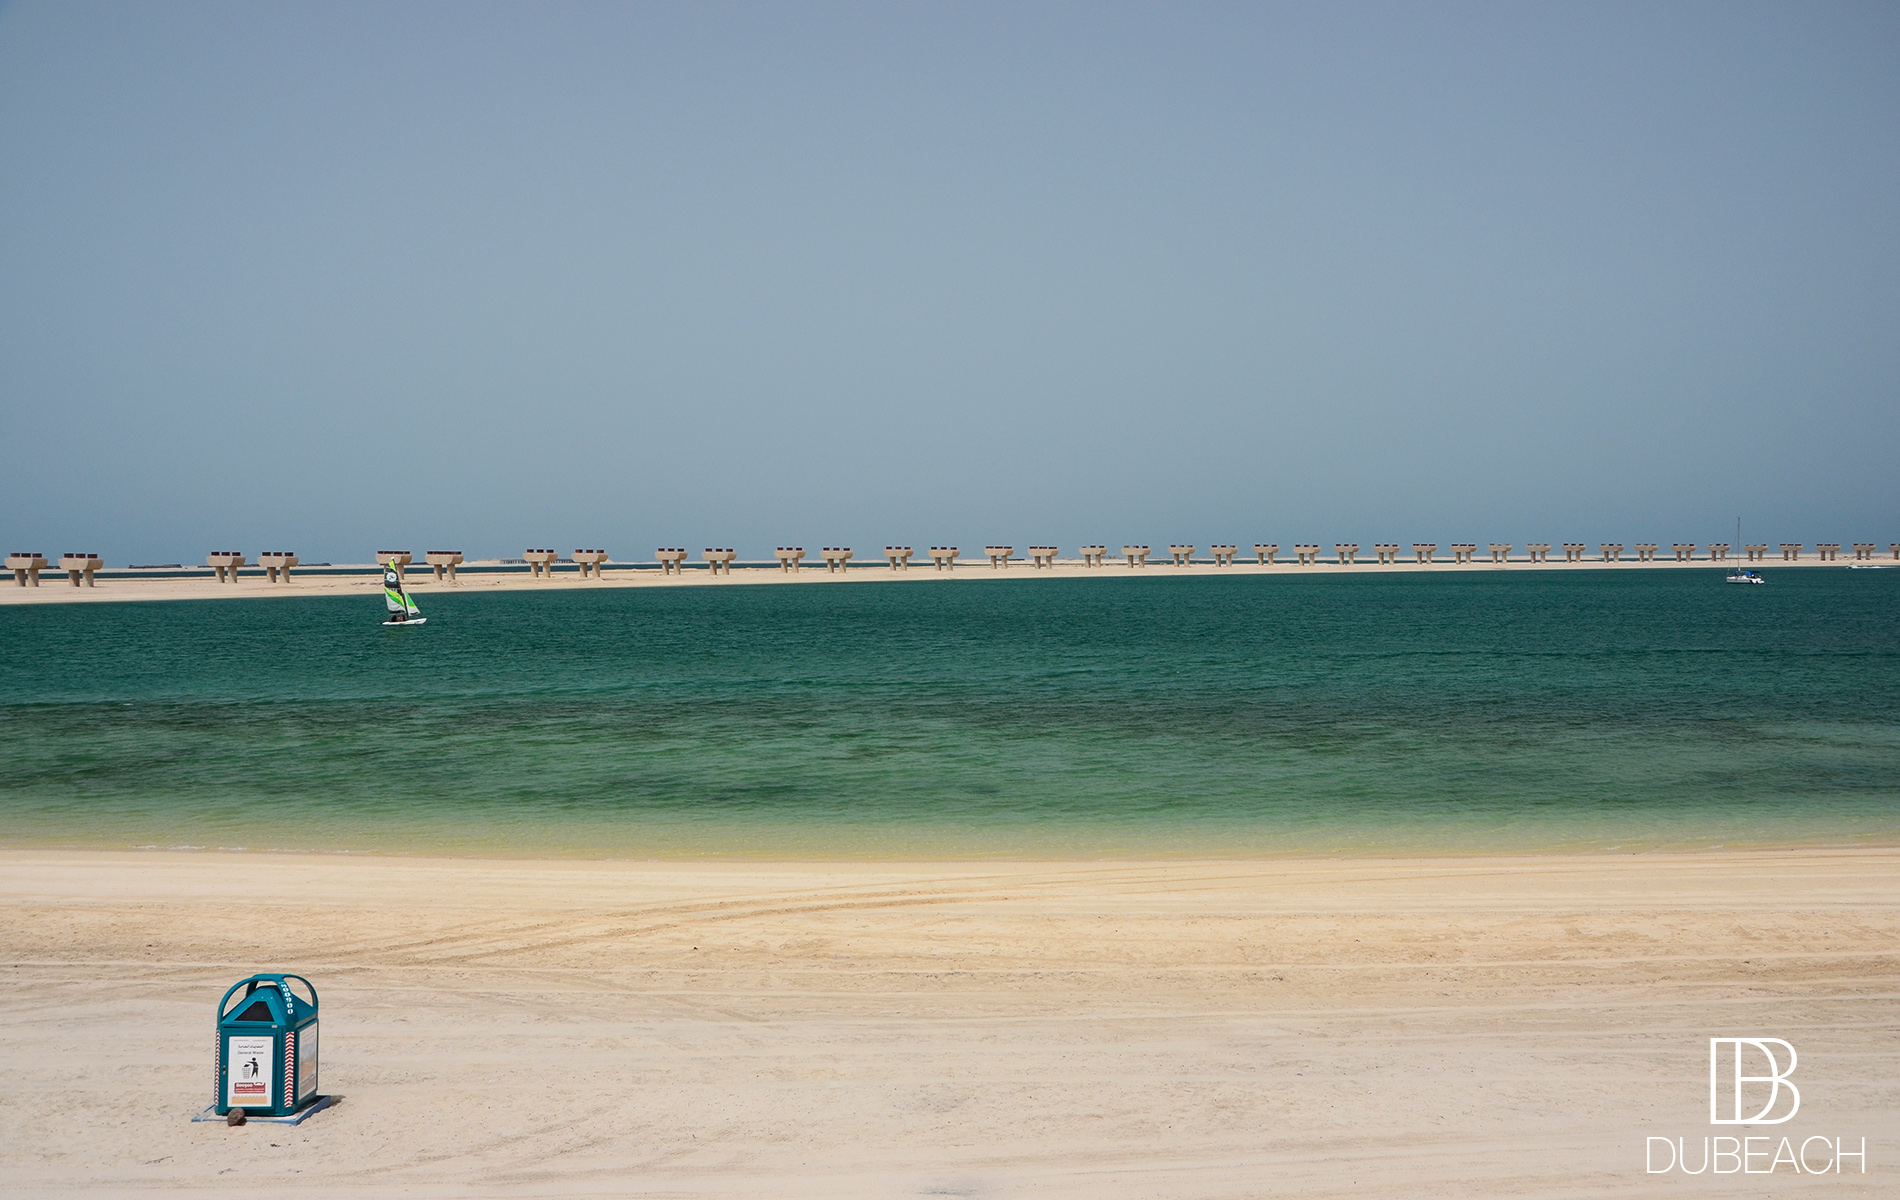 dog beach jebel ali dubai